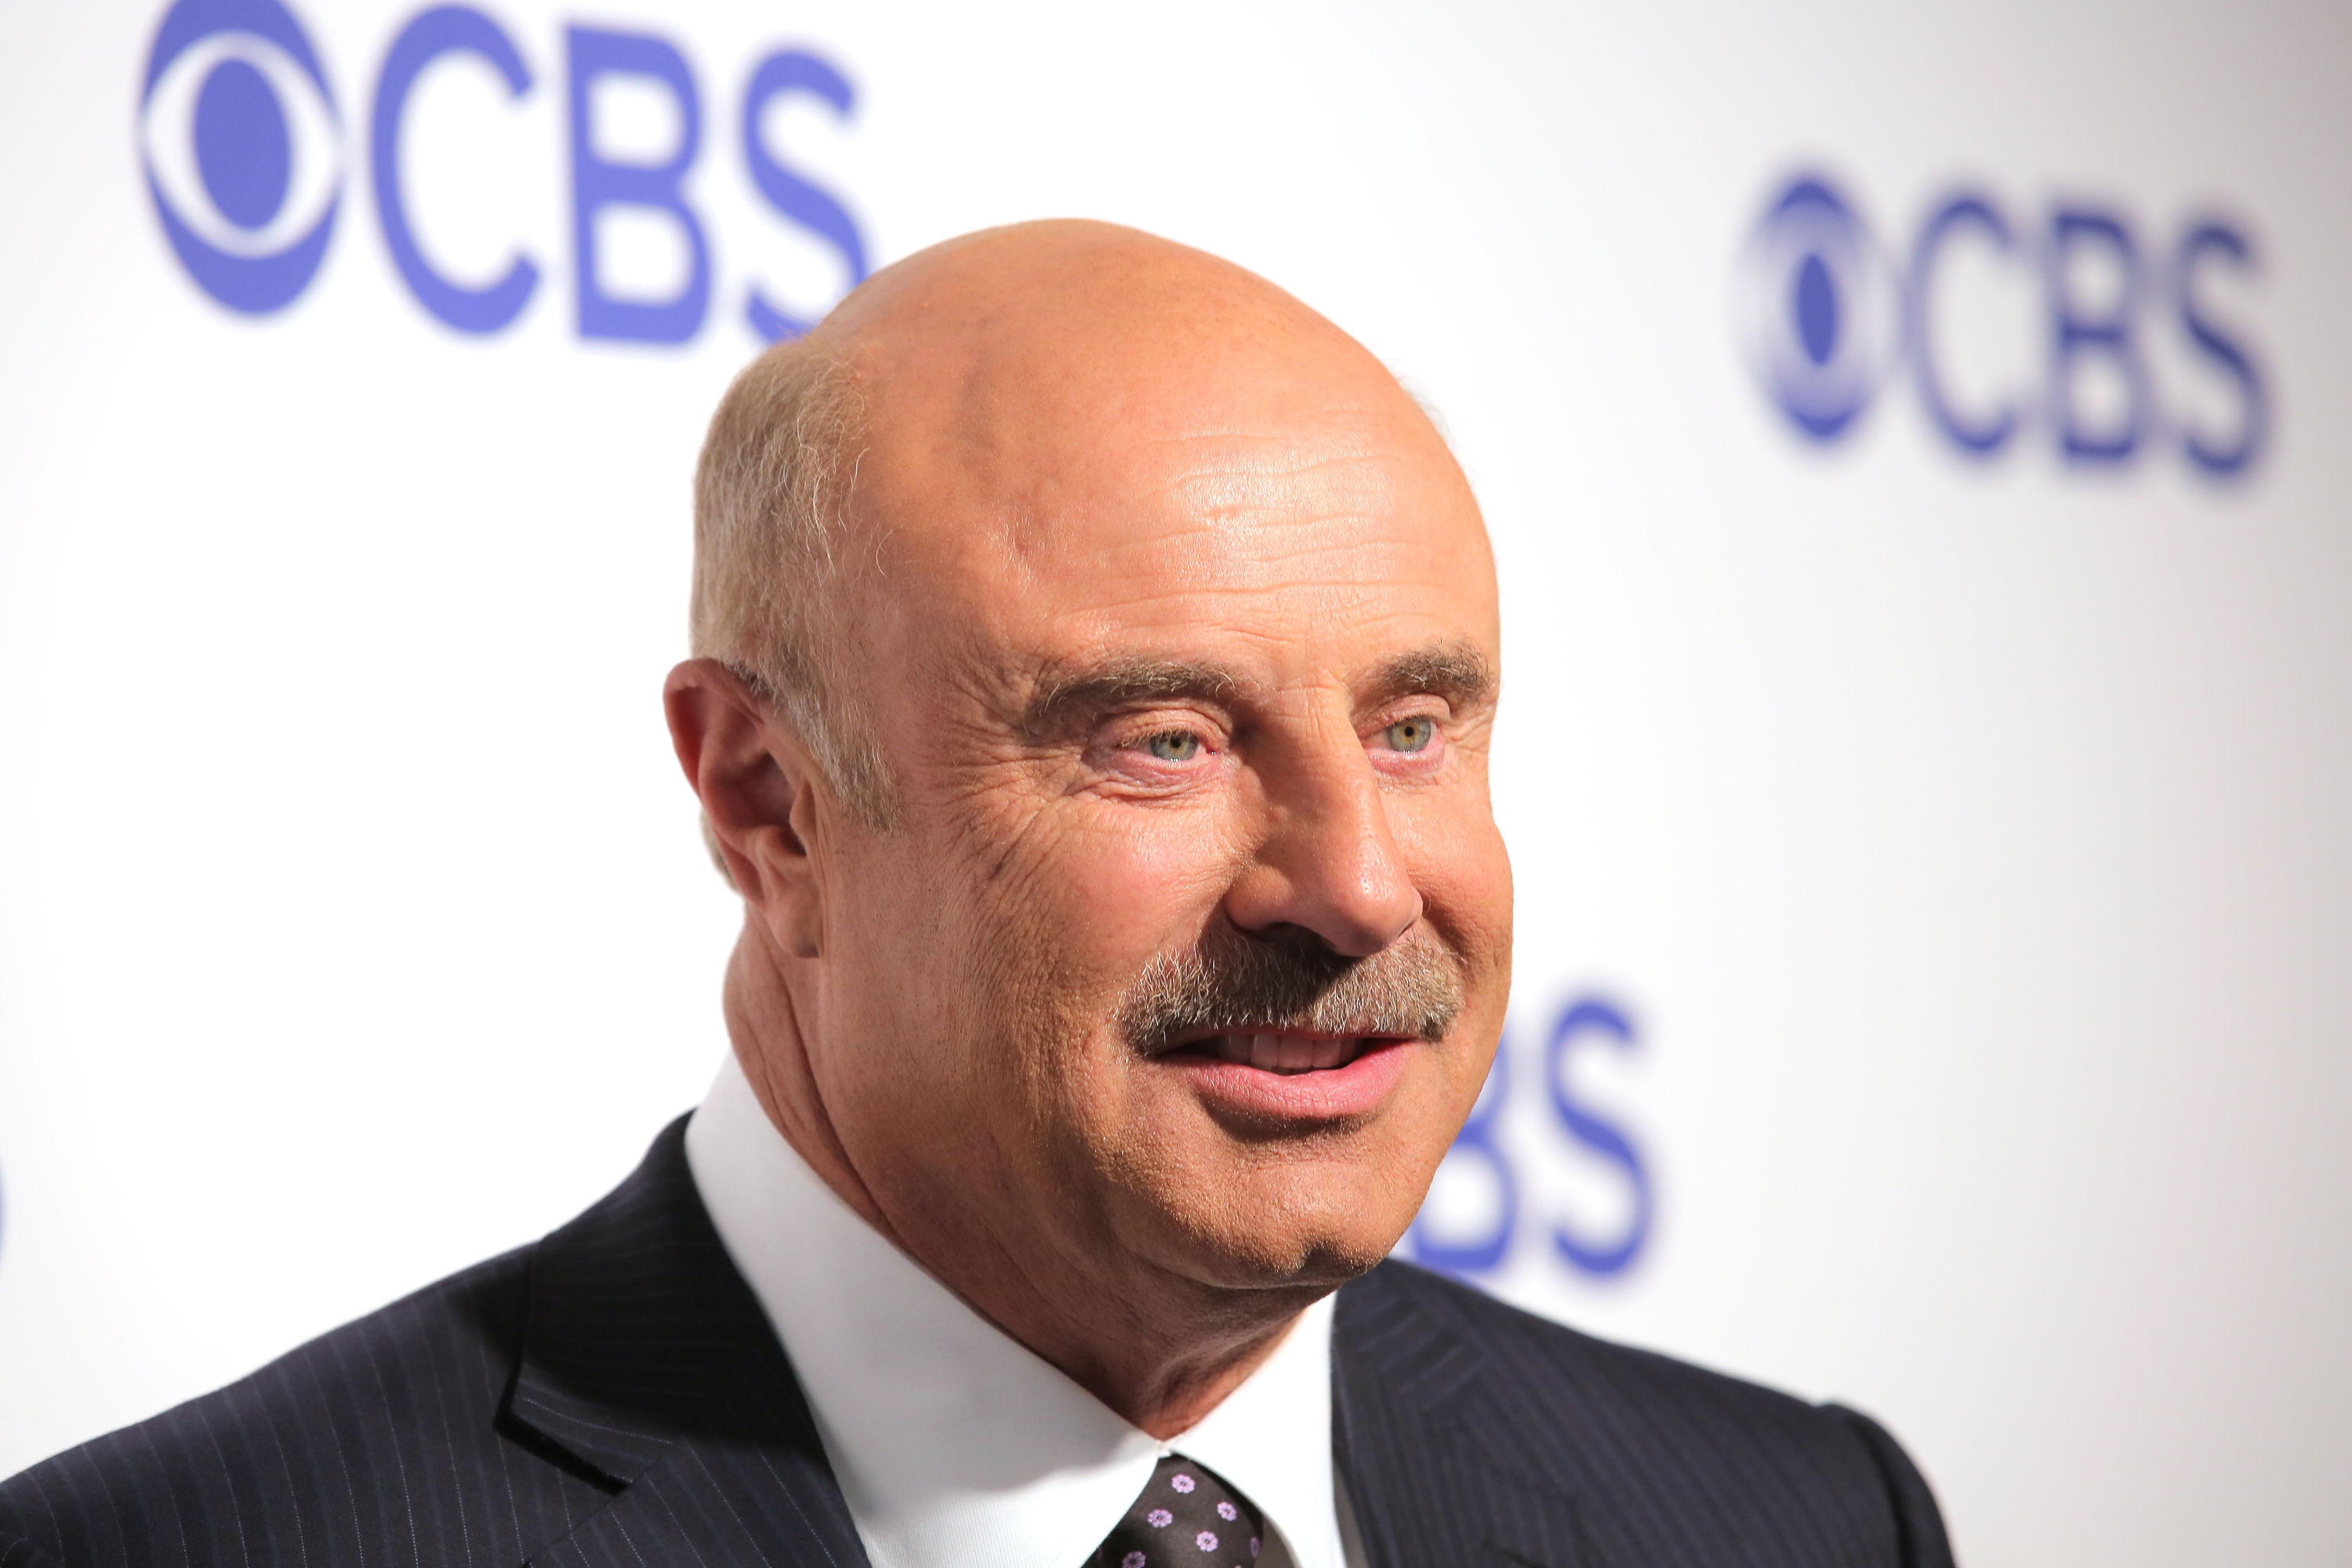 Dr. Phil facts